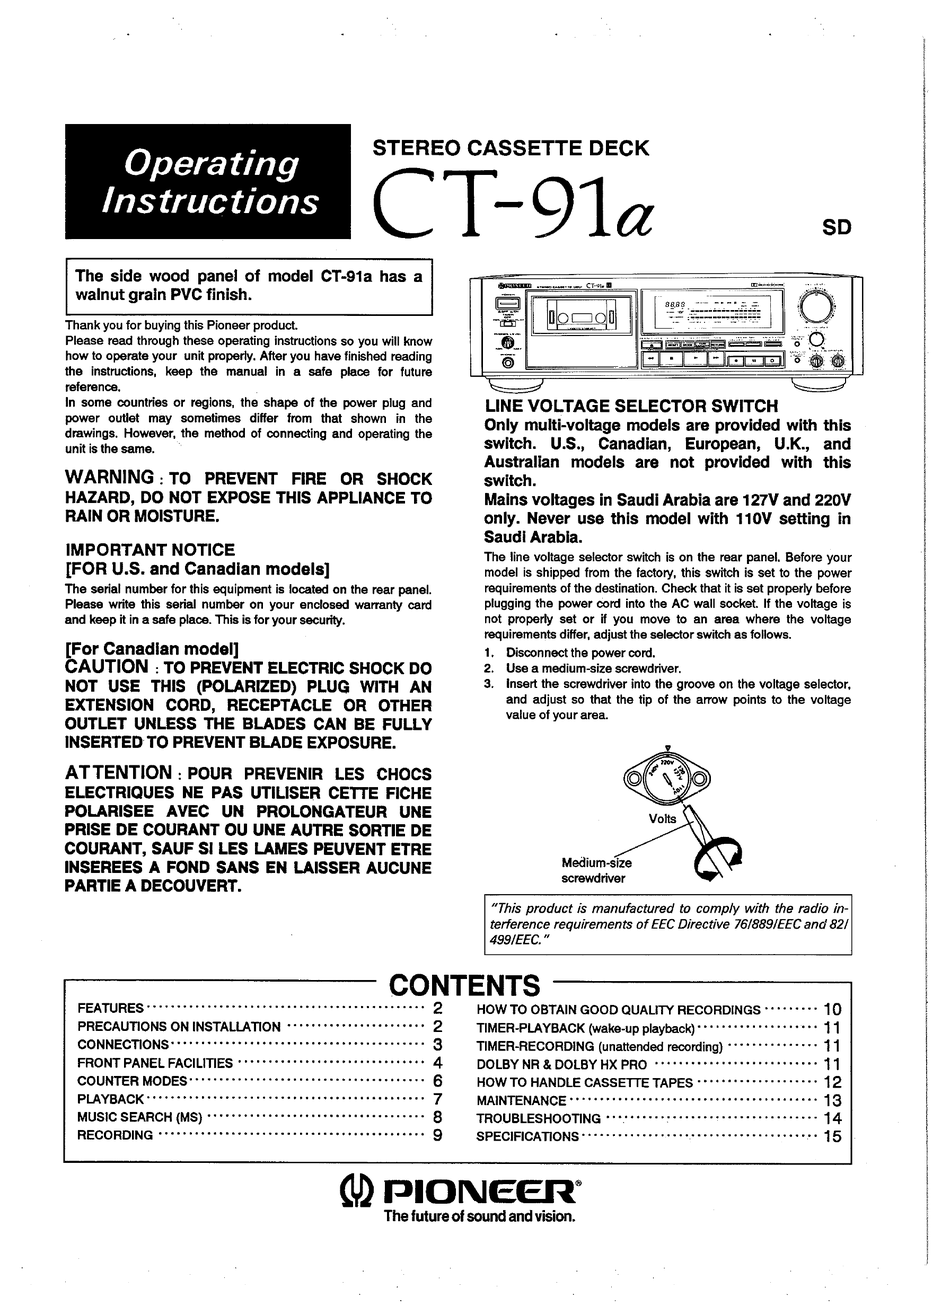 PIONEER CT-91A OPERATING INSTRUCTIONS MANUAL Pdf Download